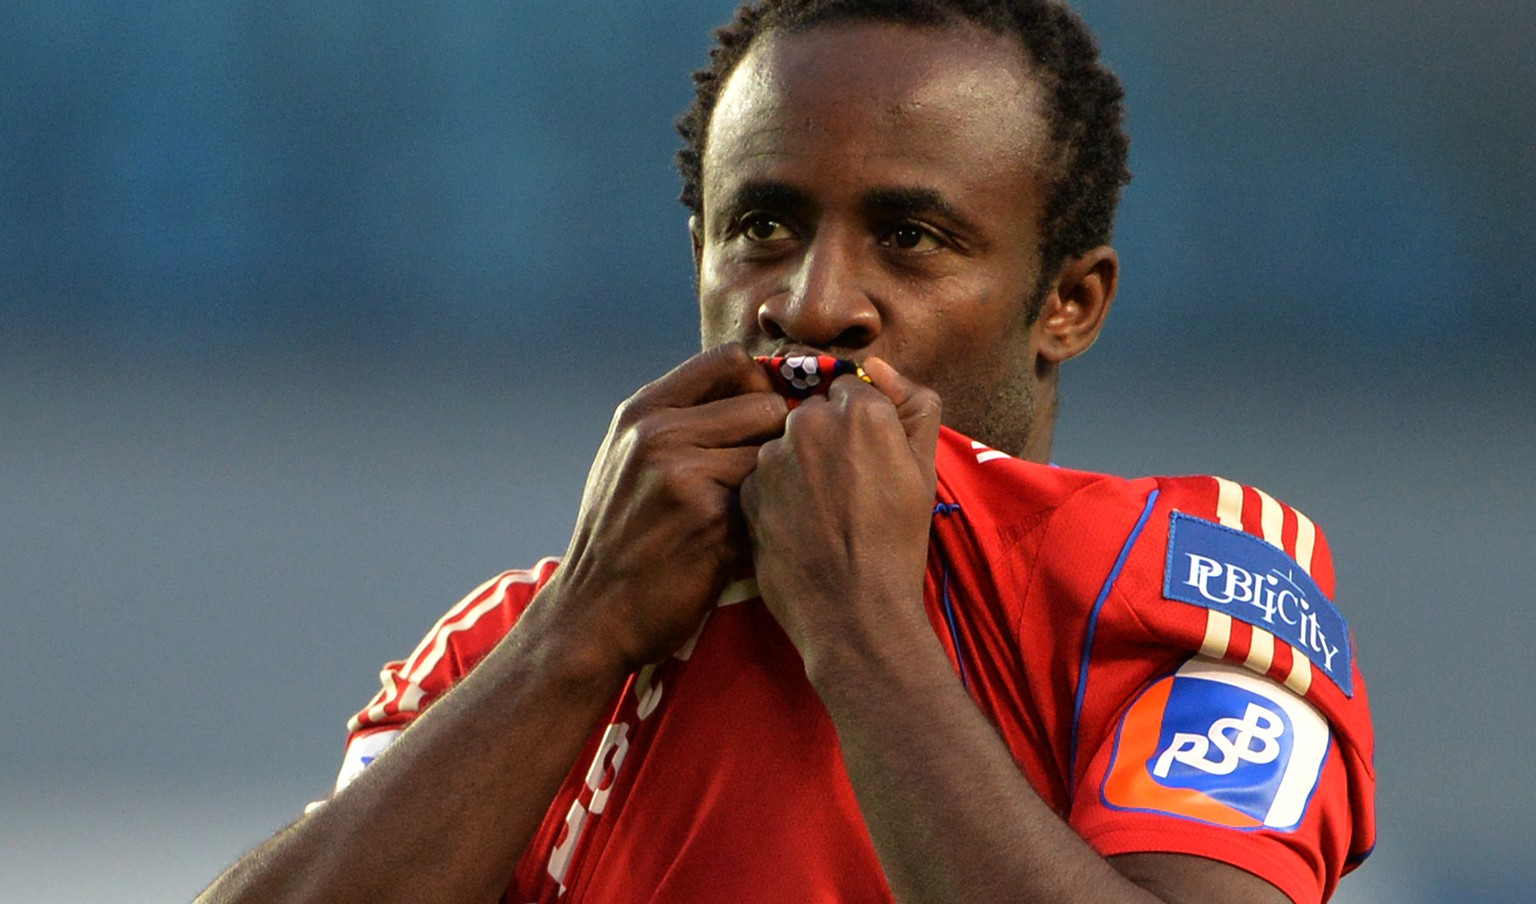 KHIMKI, RUSSIA - JULY 22: Seydou Doumbia of PFC CSKA Moscow celebrates after scoring a goal during the Russian Premier League match between PFC CSKA Moscow and FC Krylia Sovetov Samara at the Arena Khimki Stadium on July 22, 2013 in Khimki, Russia.  (Photo by Epsilon/Getty Images)